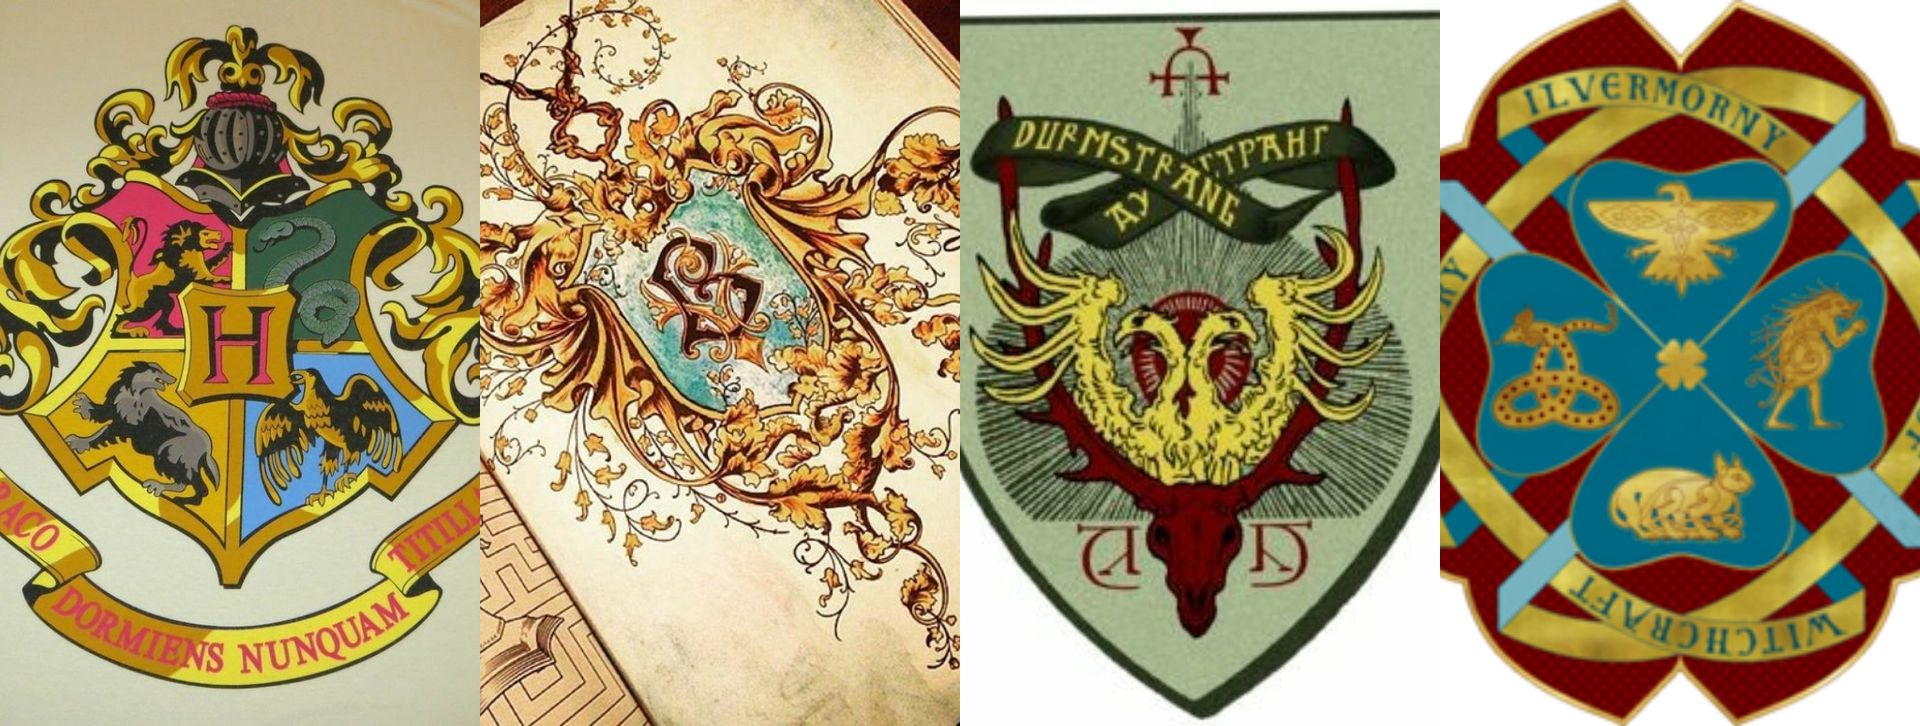 Eine Deutsche Zauberschule Hypothese Das Wappen Wattpad Дурмстранг) was one of the three largest wizarding schools in europe (the other two being hogwarts and beauxbatons). eine deutsche zauberschule hypothese